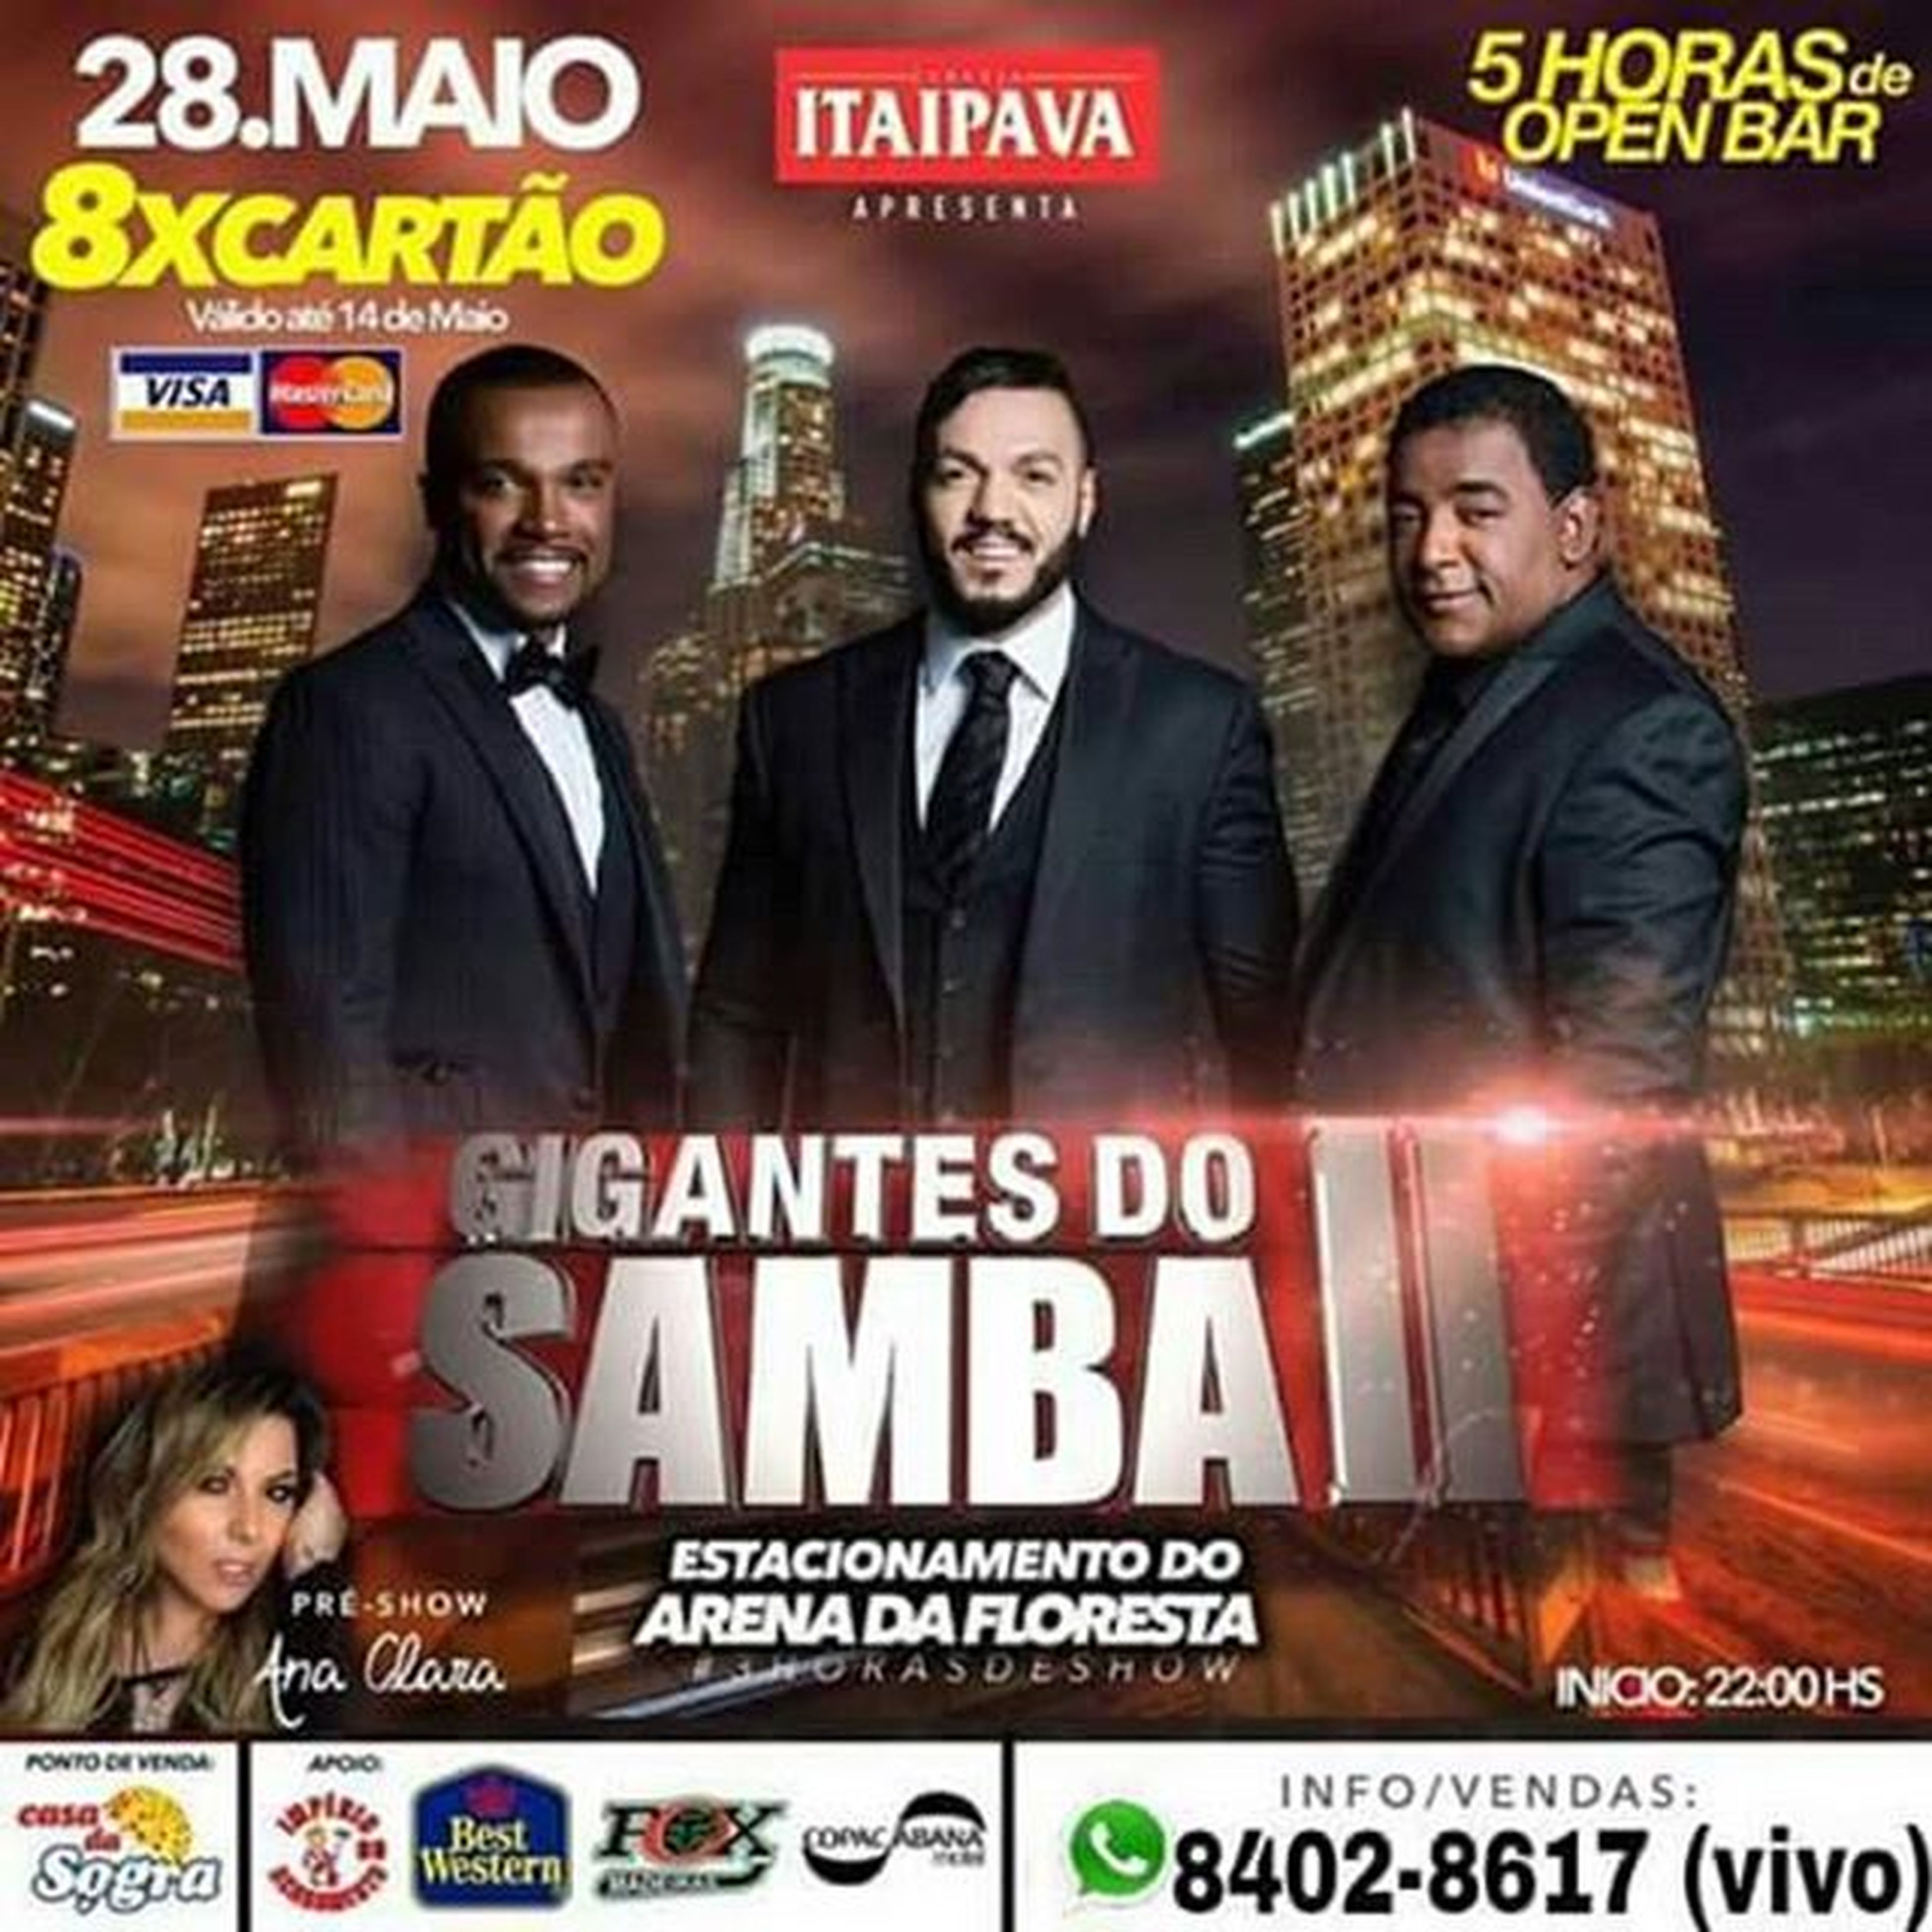 ✅☆ *GIGANTES DO SAMBA.*☆✅ 28 de Maio no estacionamento do Arena da floresta. VENDAS📱8402 -8617 (vivo)📱 *Parcelado em até 8x nos cartões 💳 *5 🕔 HORAS DE OPEN BAR.* 🍺 *3 🕒 HORAS DE SHOW.* 😎 *🎤🎼 SAMBA & PAGODE. 🎤🎼* Curta 👇 Acre Fest Eventos Siga 👉 @acrefesteventos Drink Emusic Dj Party Music Fun Love Saturday Kids Friends Happy Norte Brasil Acre Riobranco Estado